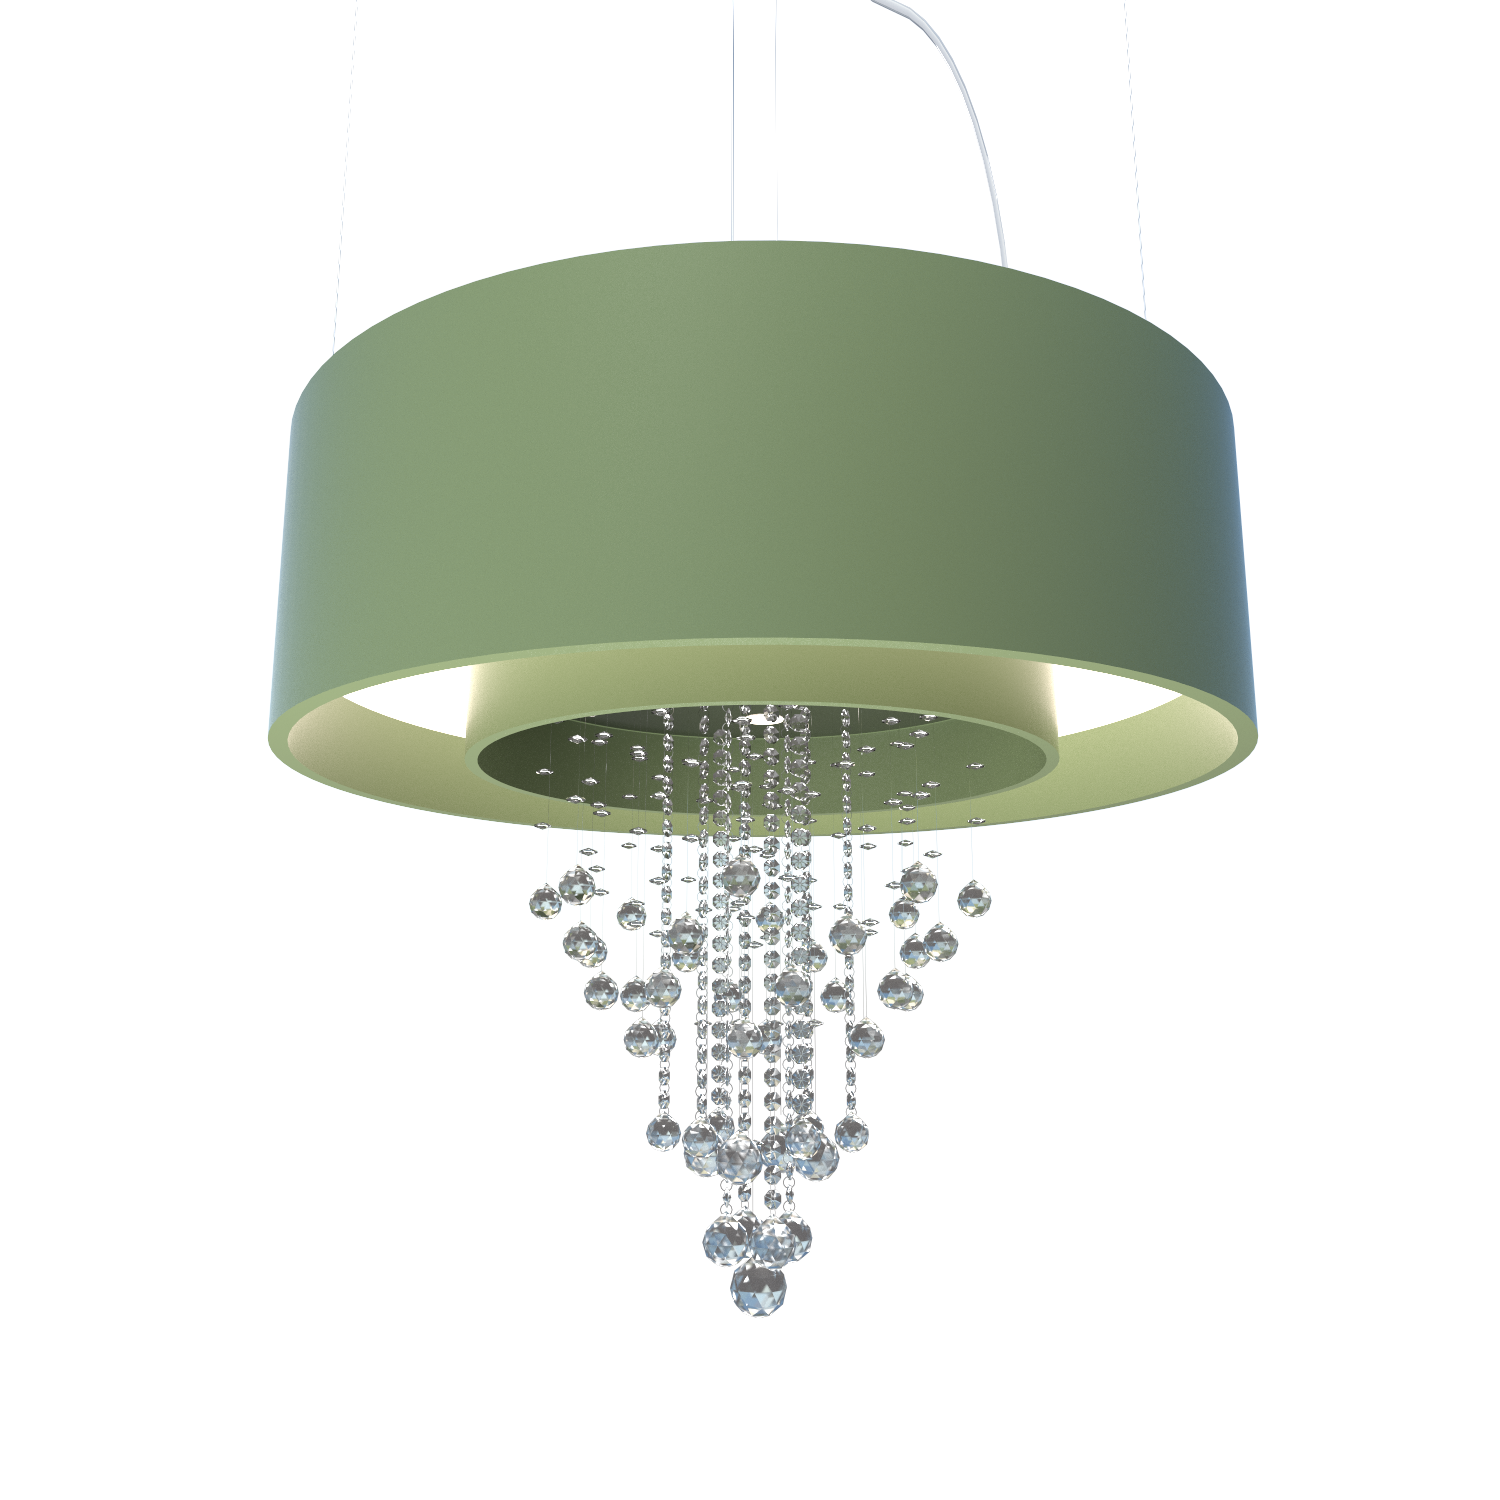 Pendant Lamp Accord Cristais 215C - Cristais Line Accord Lighting | 30. Olive Green